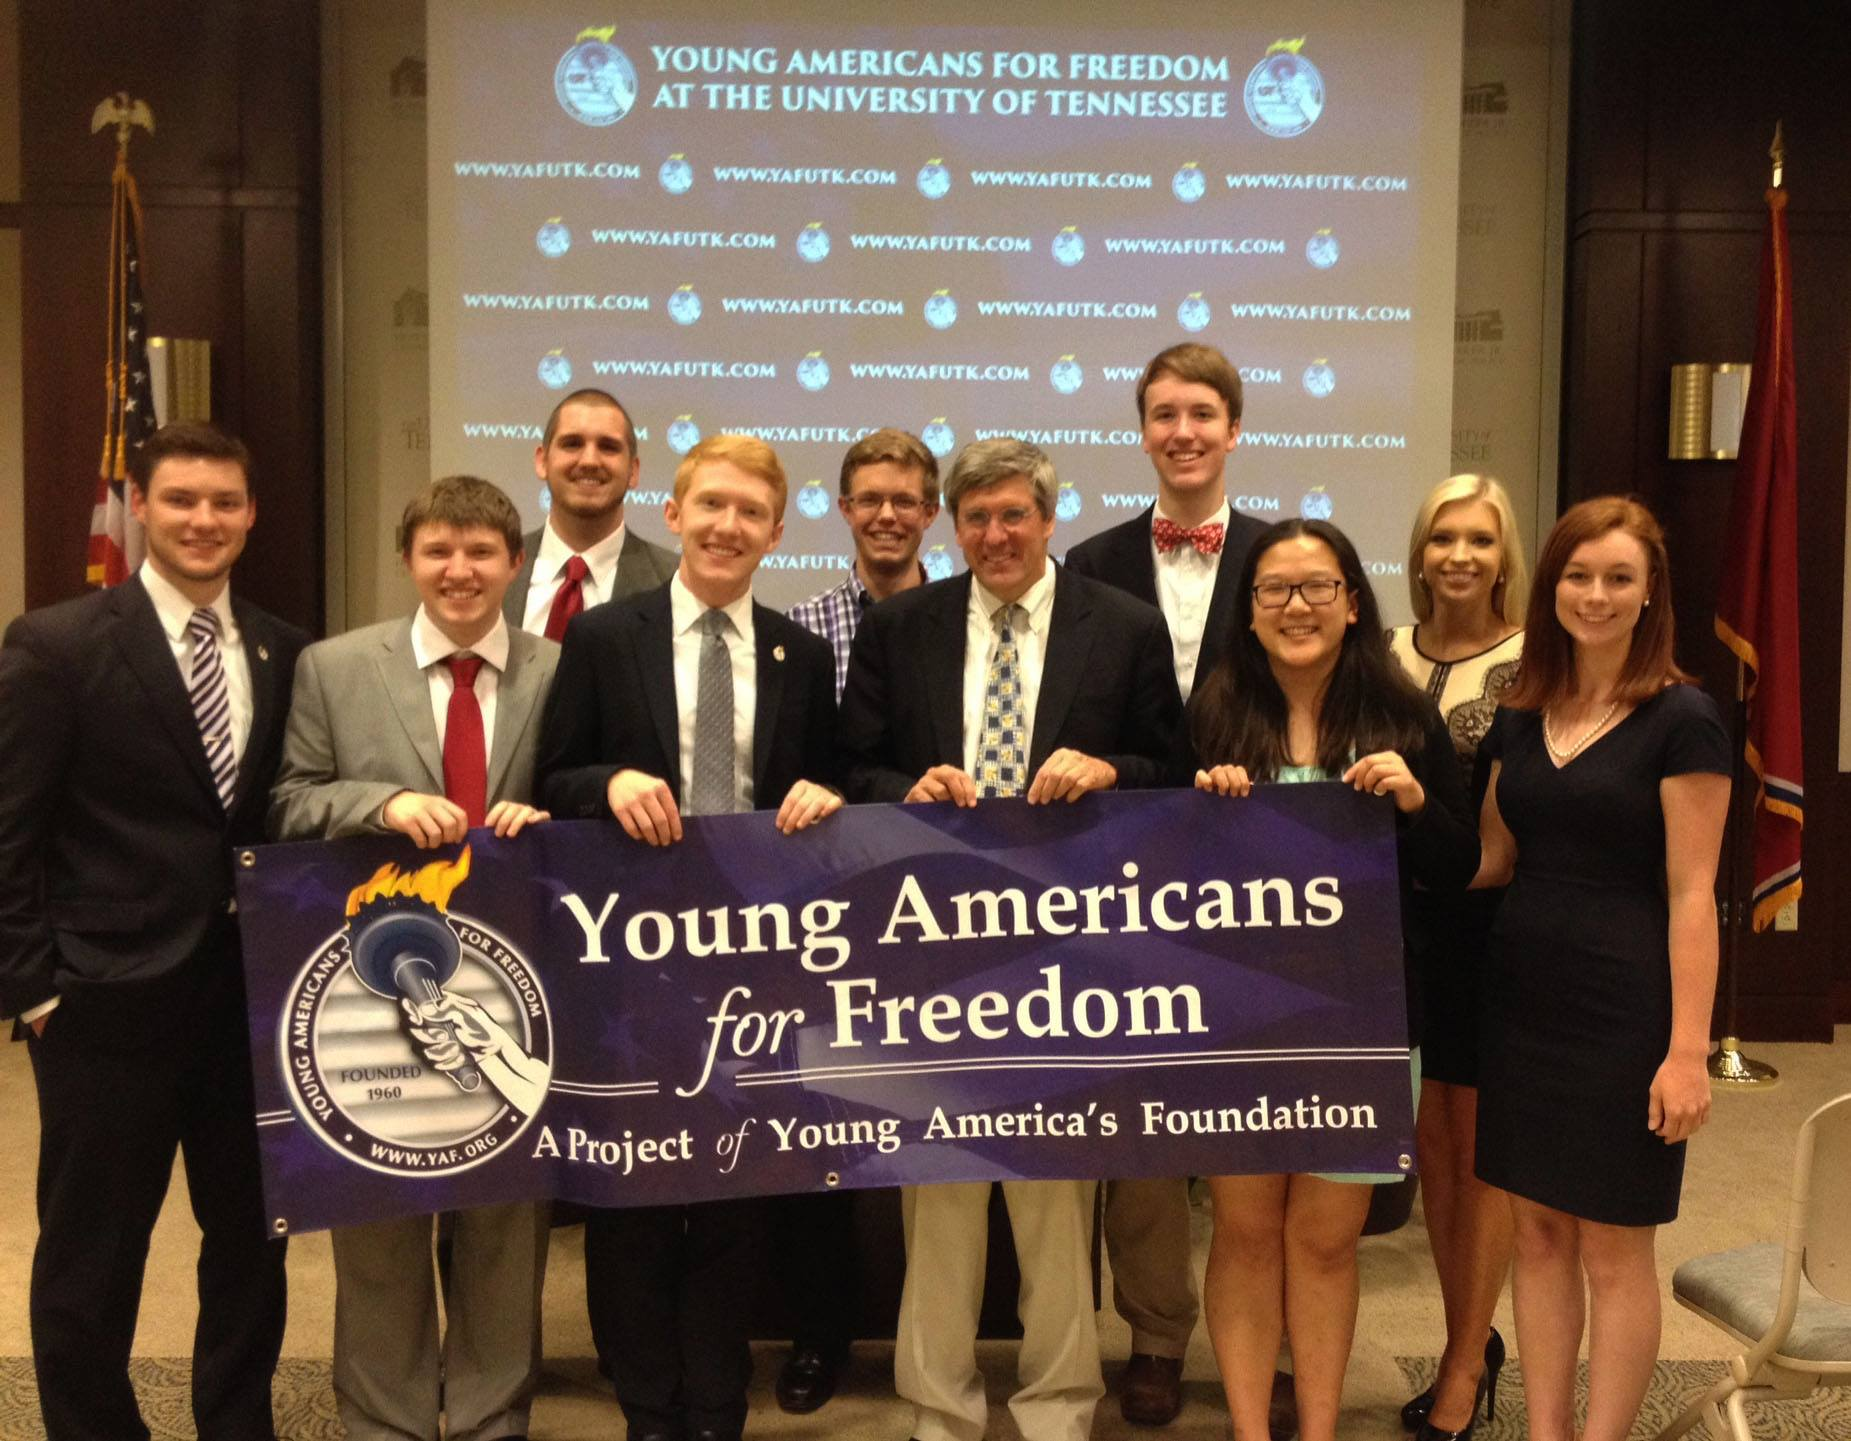 young americas foundation - HD 1851×1441